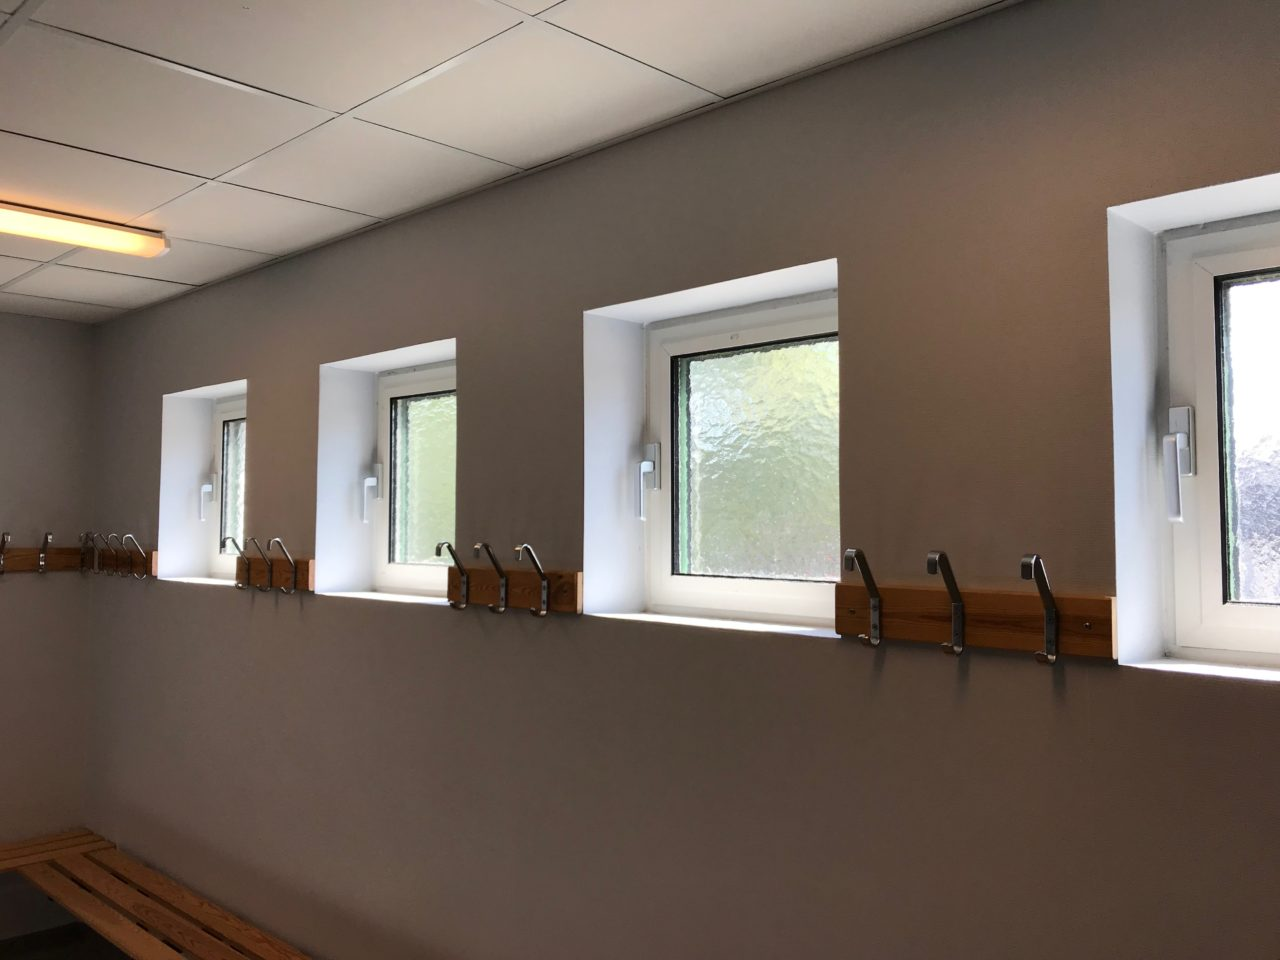 Small Windows In Dressing Room With Coat Hangers